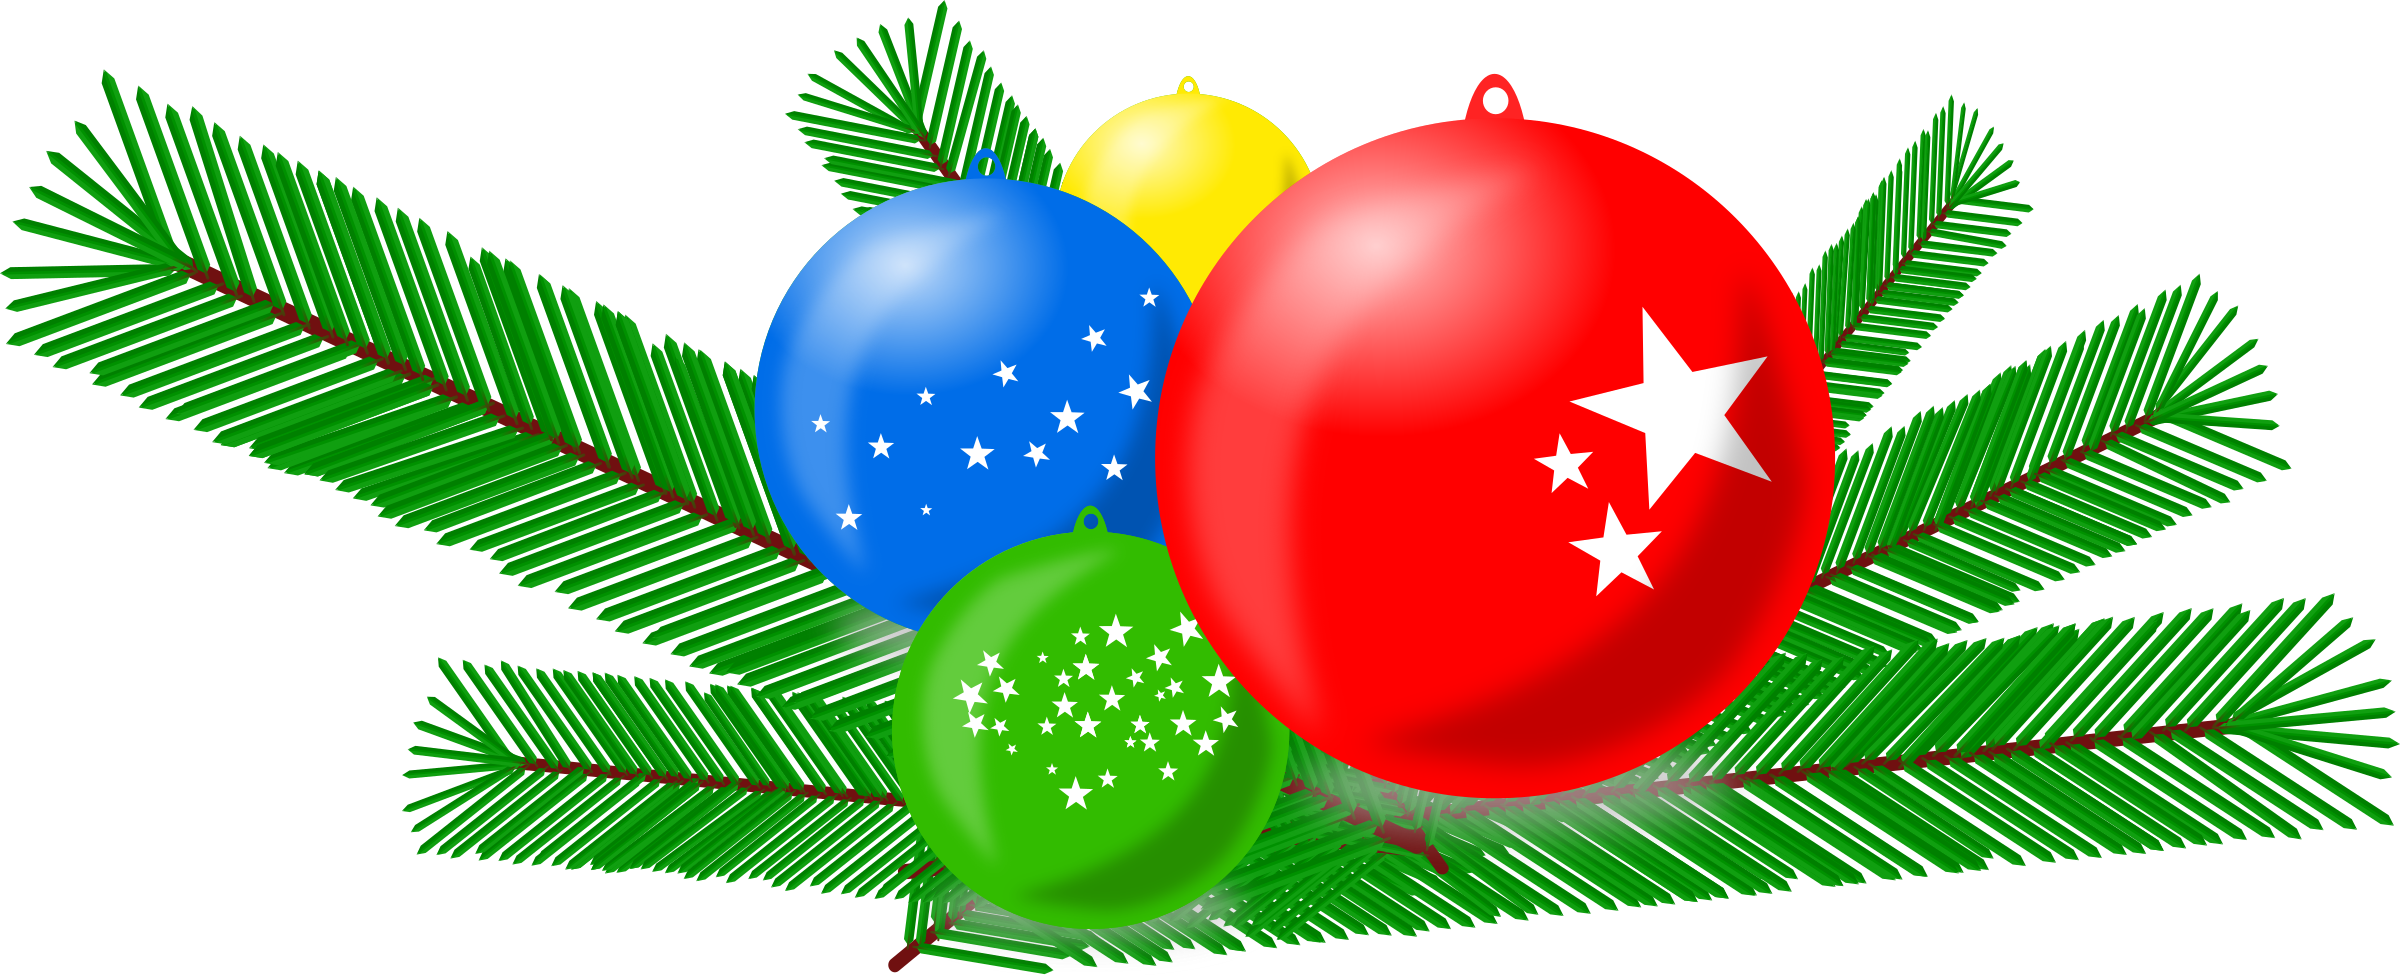 Christmas Balls by cyberscooty